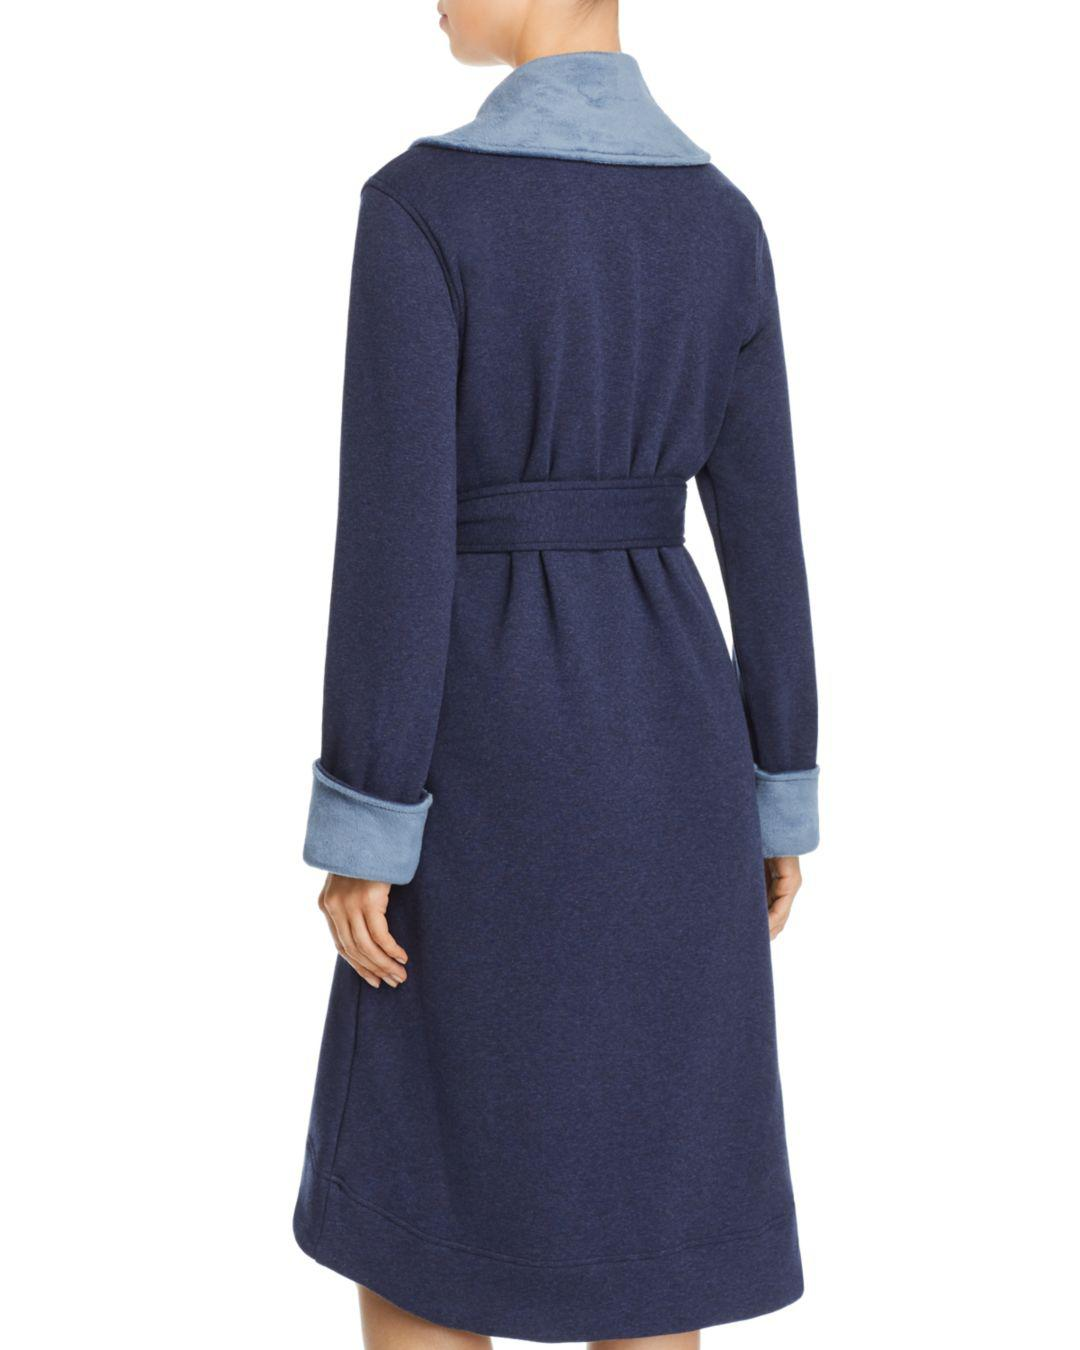 4a1a75550d Lyst - UGG Duffield Ii Double-knit Fleece Robe in Blue